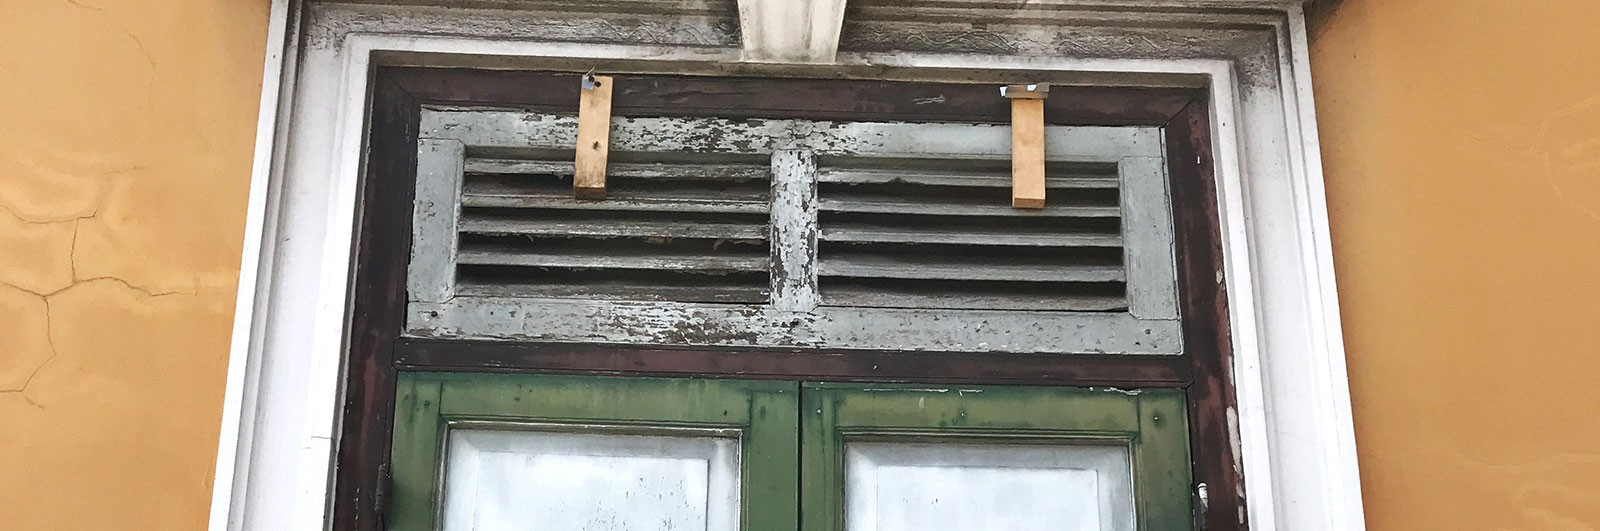 Peeling from windows sills and frames